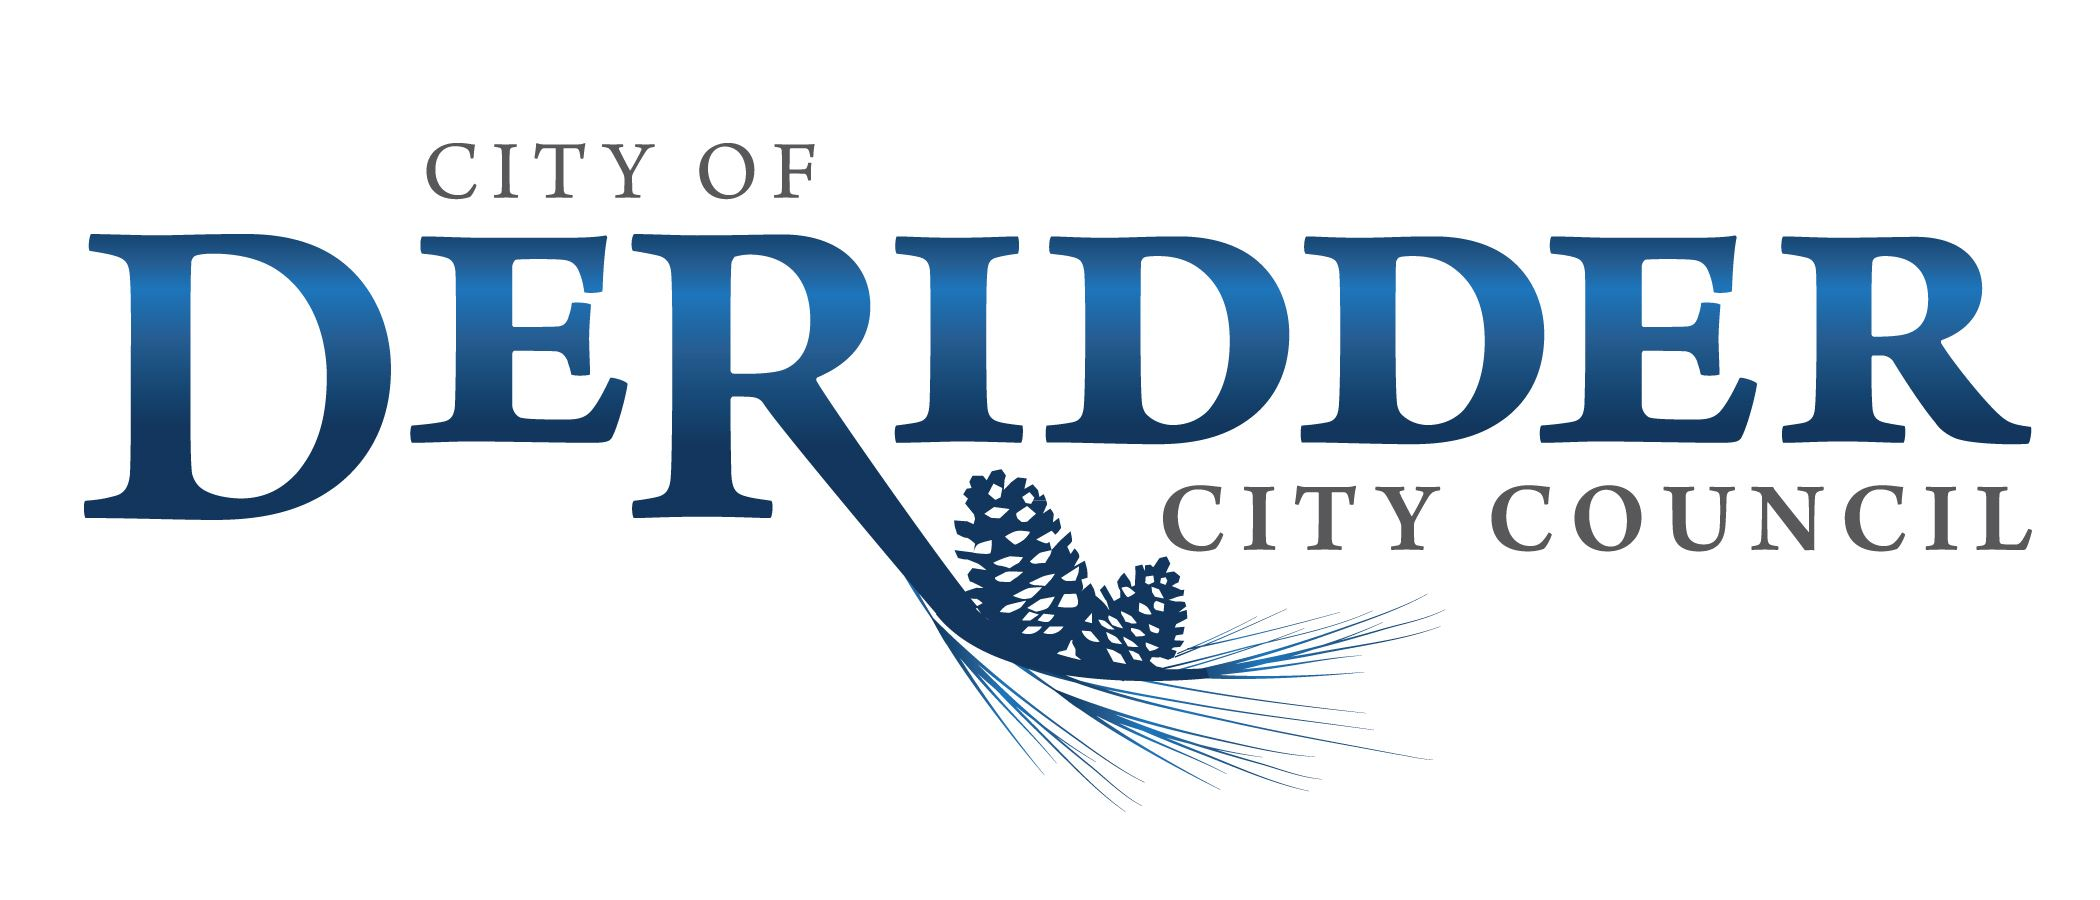 City of DeRidder logo-City Council